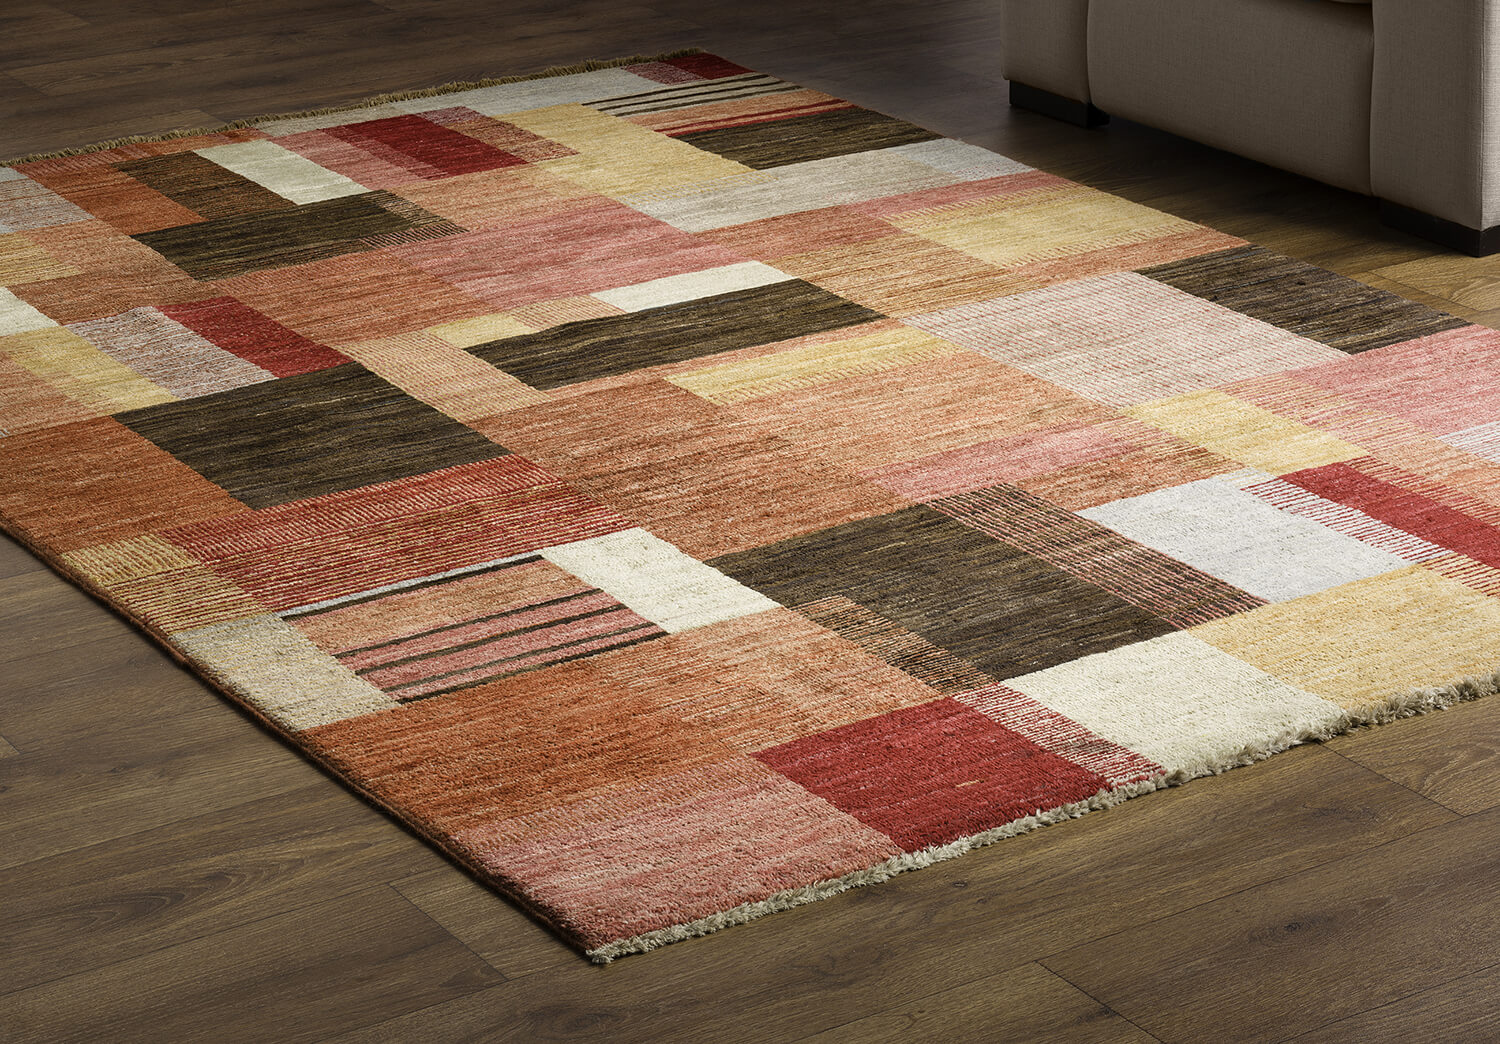 Area rug on floor